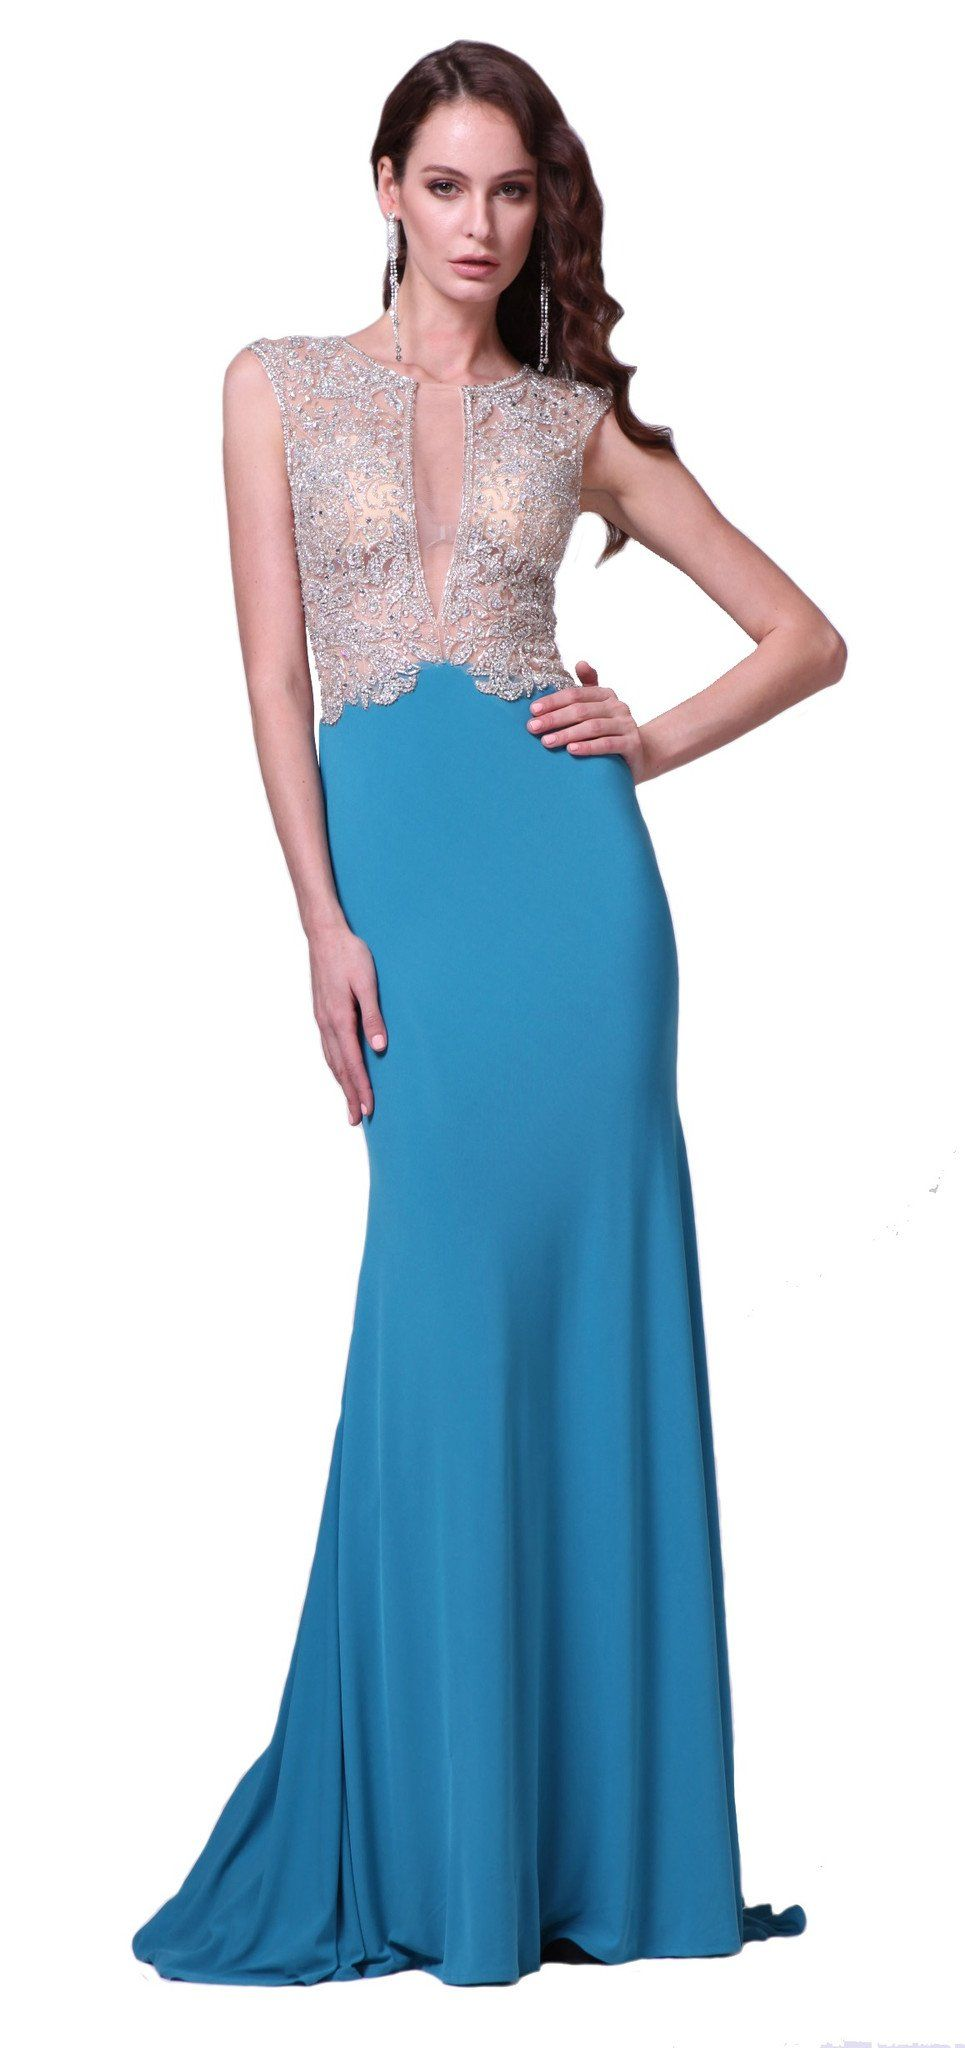 CD8771 Dress with High Neck and Illusion Keyhole Detail | Products ...